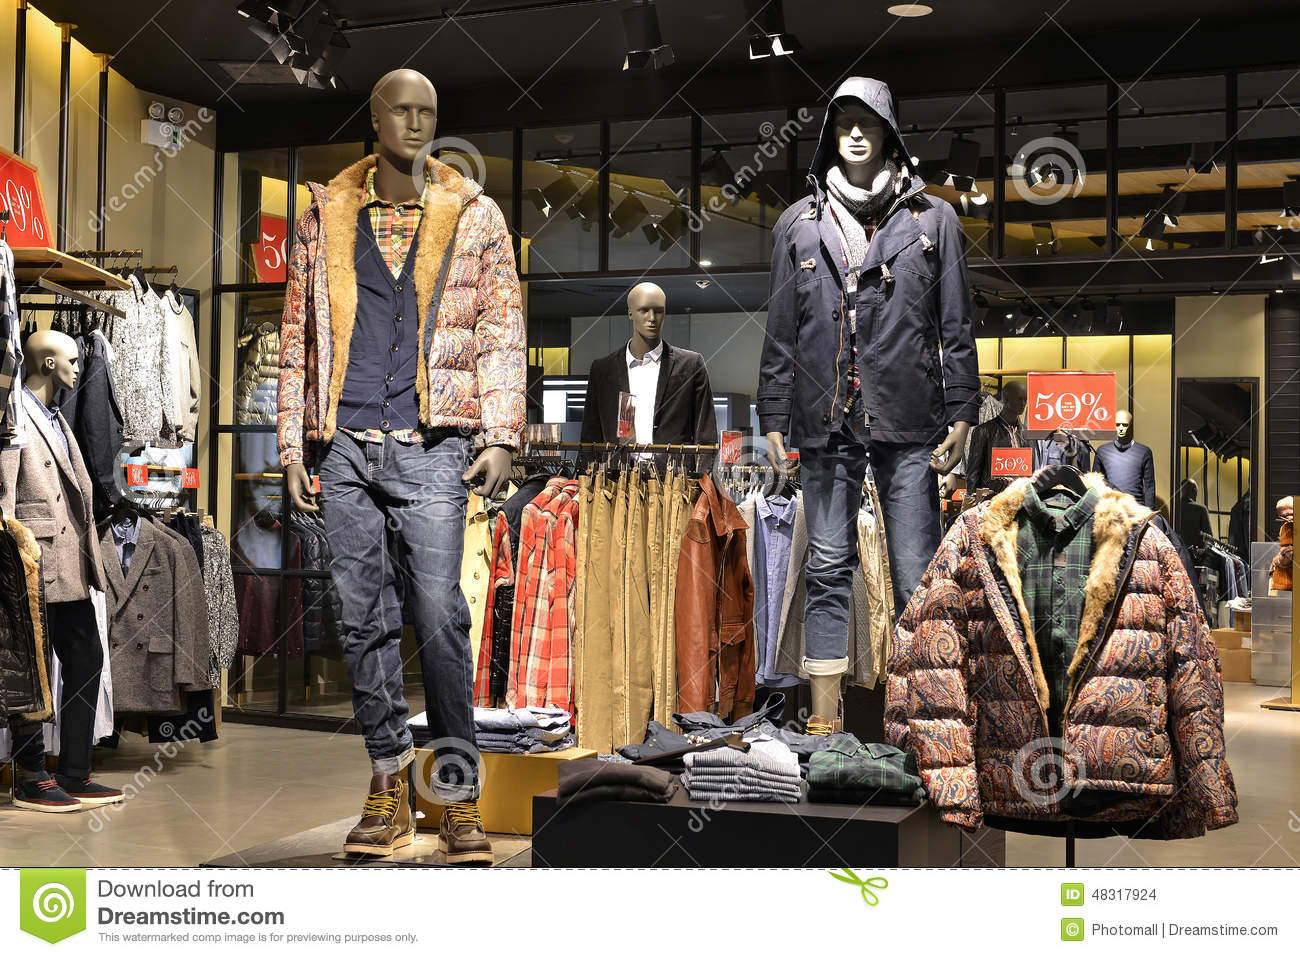 Men's Clothing. The choices and styles in men's clothing have evolved and expanded over the decades. Where you may have once been limited to a certain look, you can now mix and match a variety of pants, shirts, jackets, and jeans, as well as other apparel, to create dozens of unique looks.